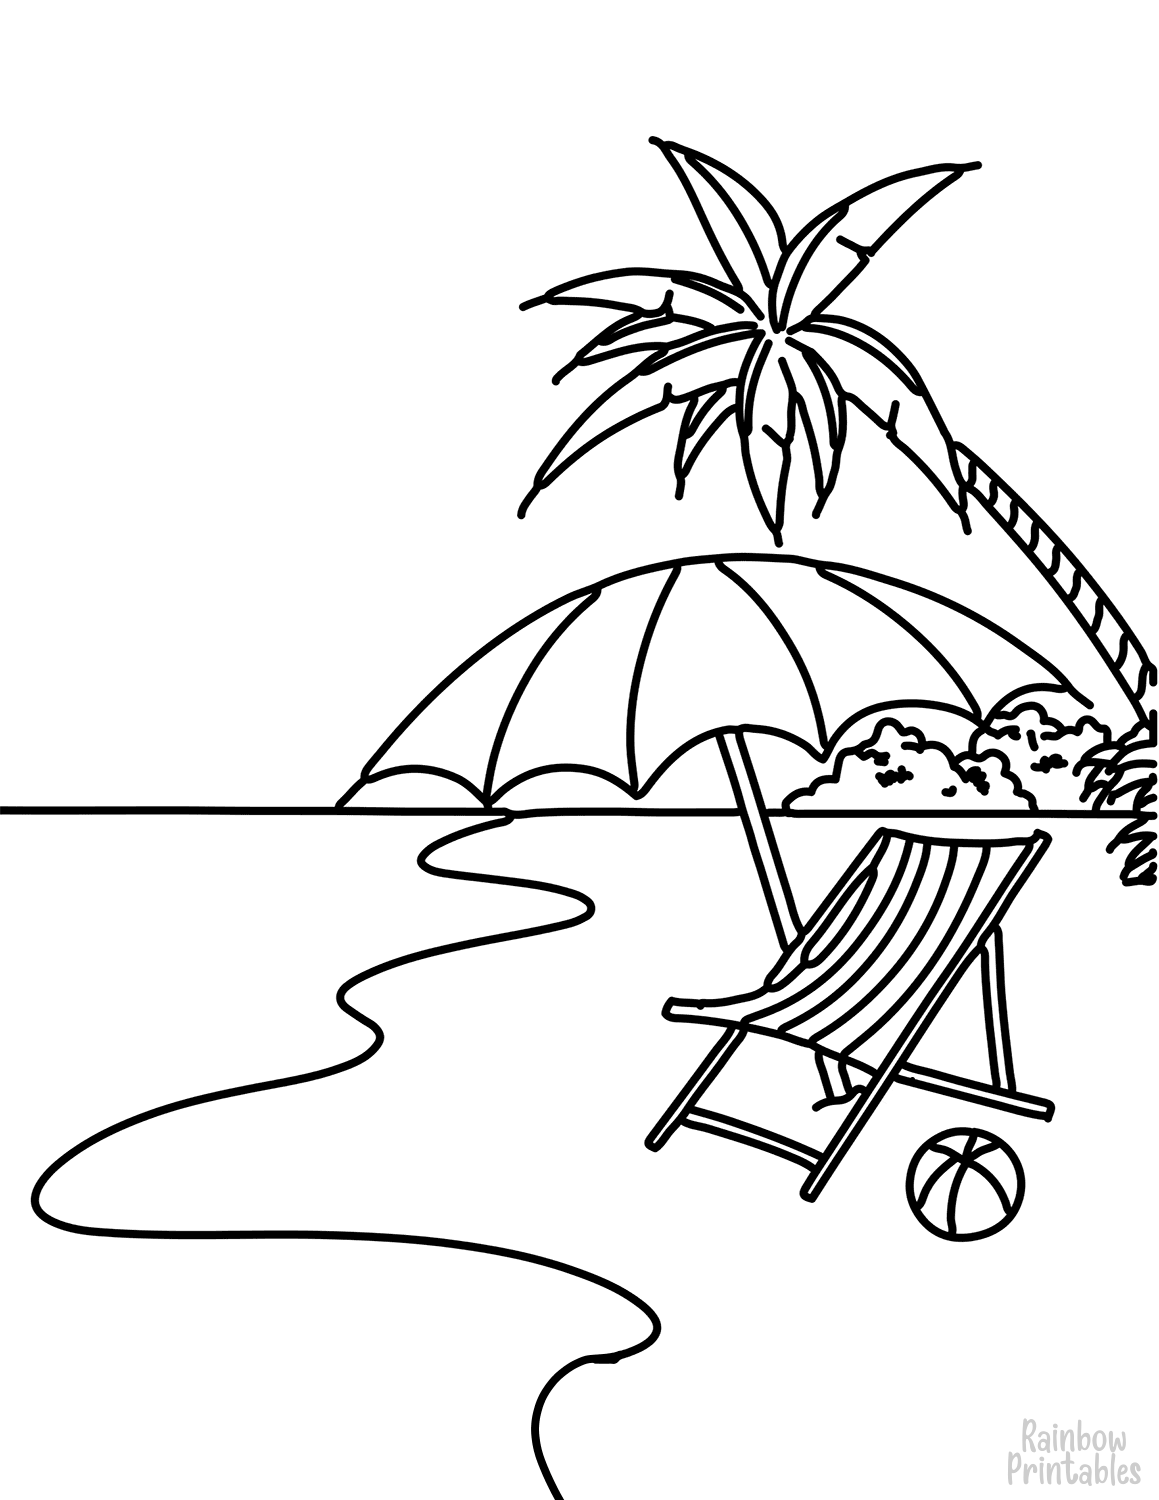 SUMMER-BEACH-SCENE-Clipart Coloring Pages for Kids Adults Art Activities Line Art